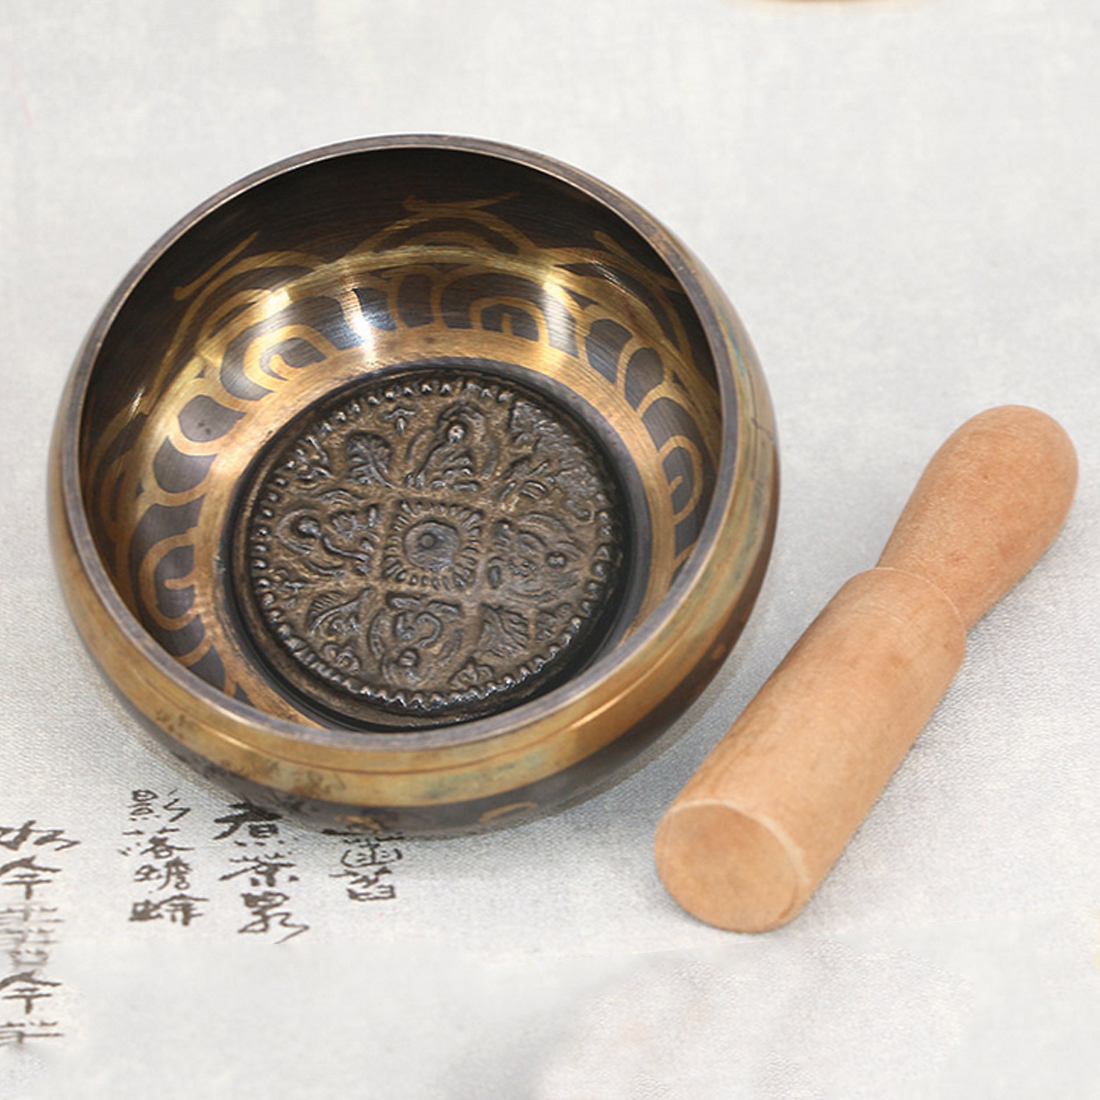 Tibetan Singing Bowl Tibetan Buddhist Brass Yoga Singing Bowl Meditation wall dishes Home DecorationTibetan Singing Bowl Tibetan Buddhist Brass Yoga Singing Bowl Meditation wall dishes Home Decoration